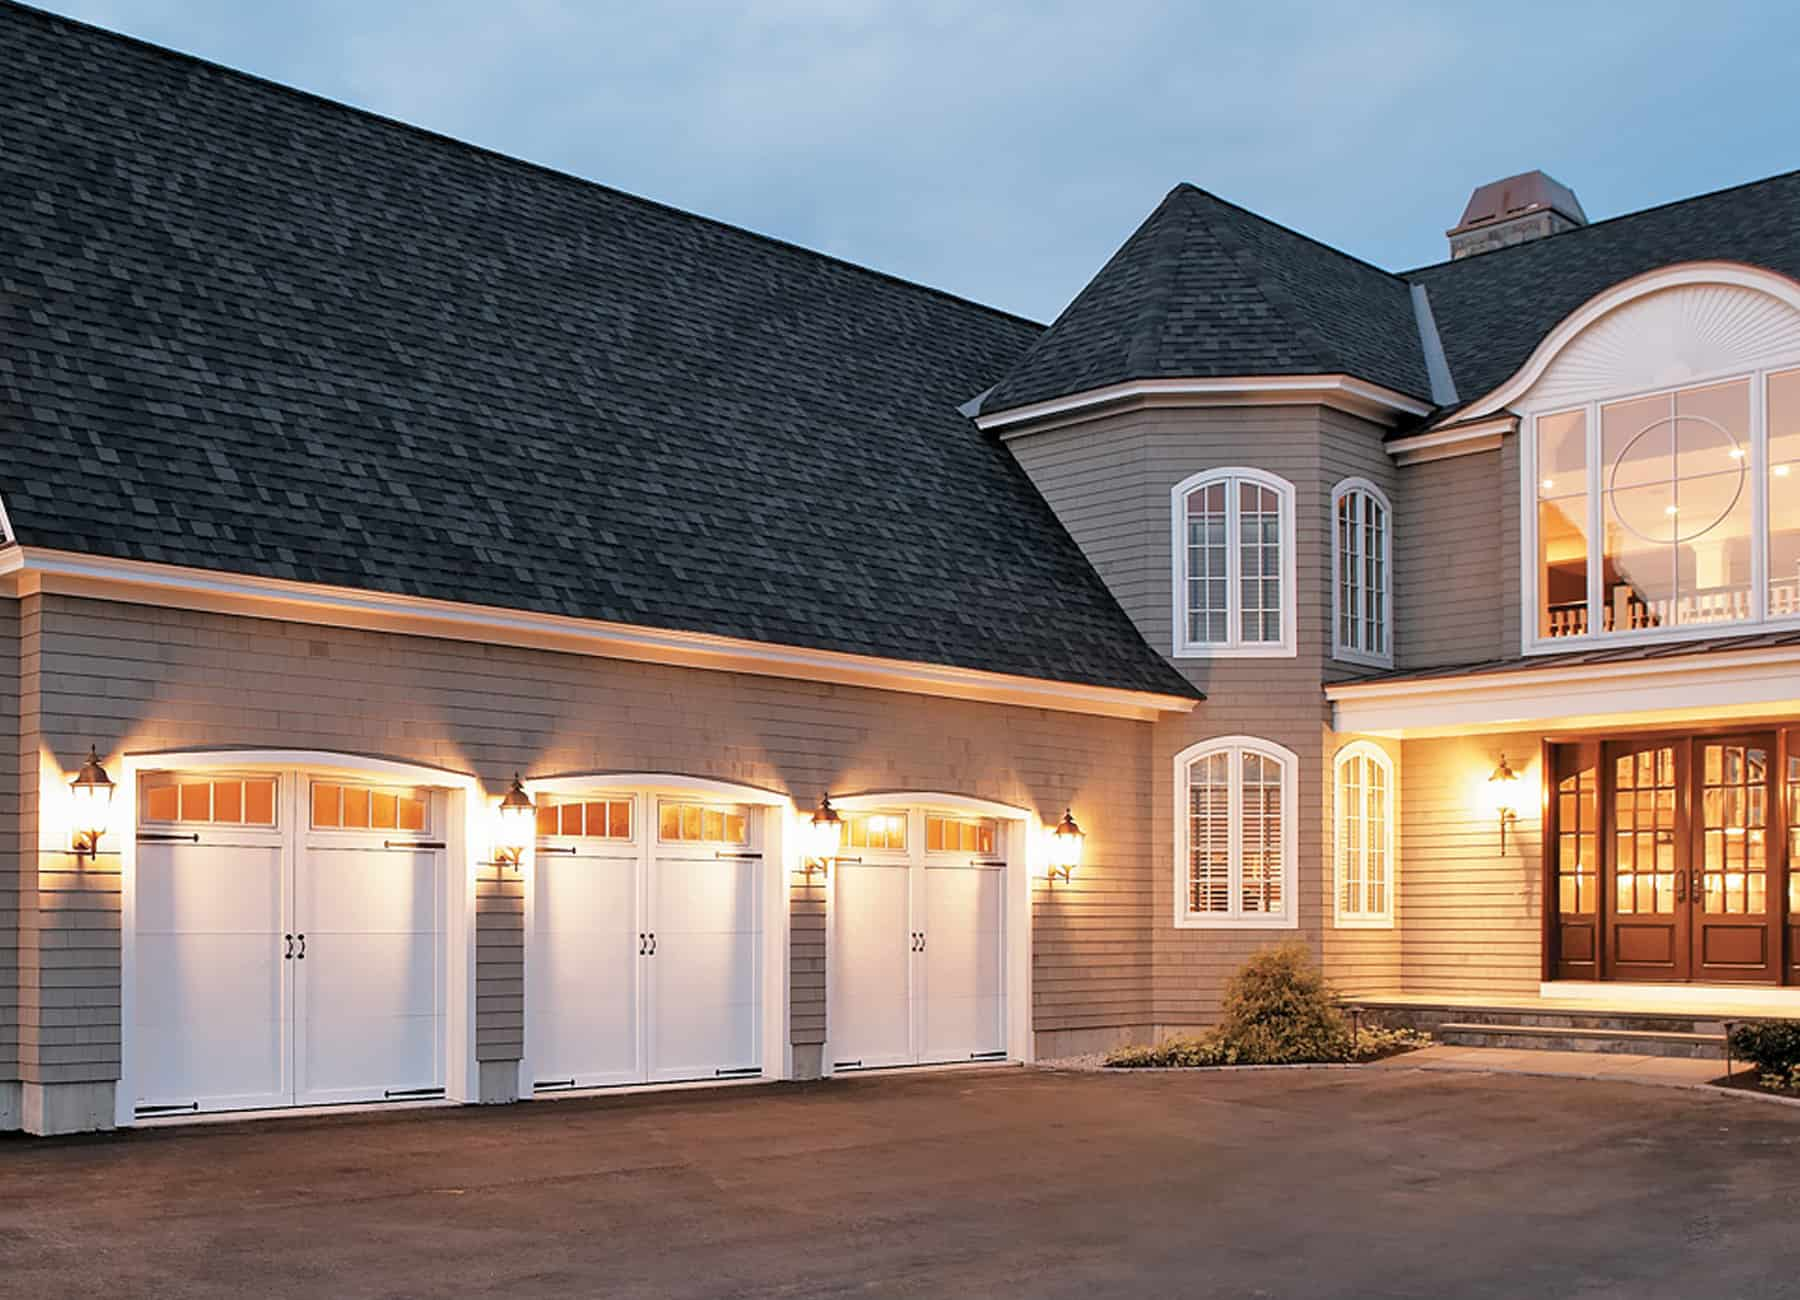 , Residential Products and Services, Overhead Door Company of Battle Creek Jackson & Ann Arbor